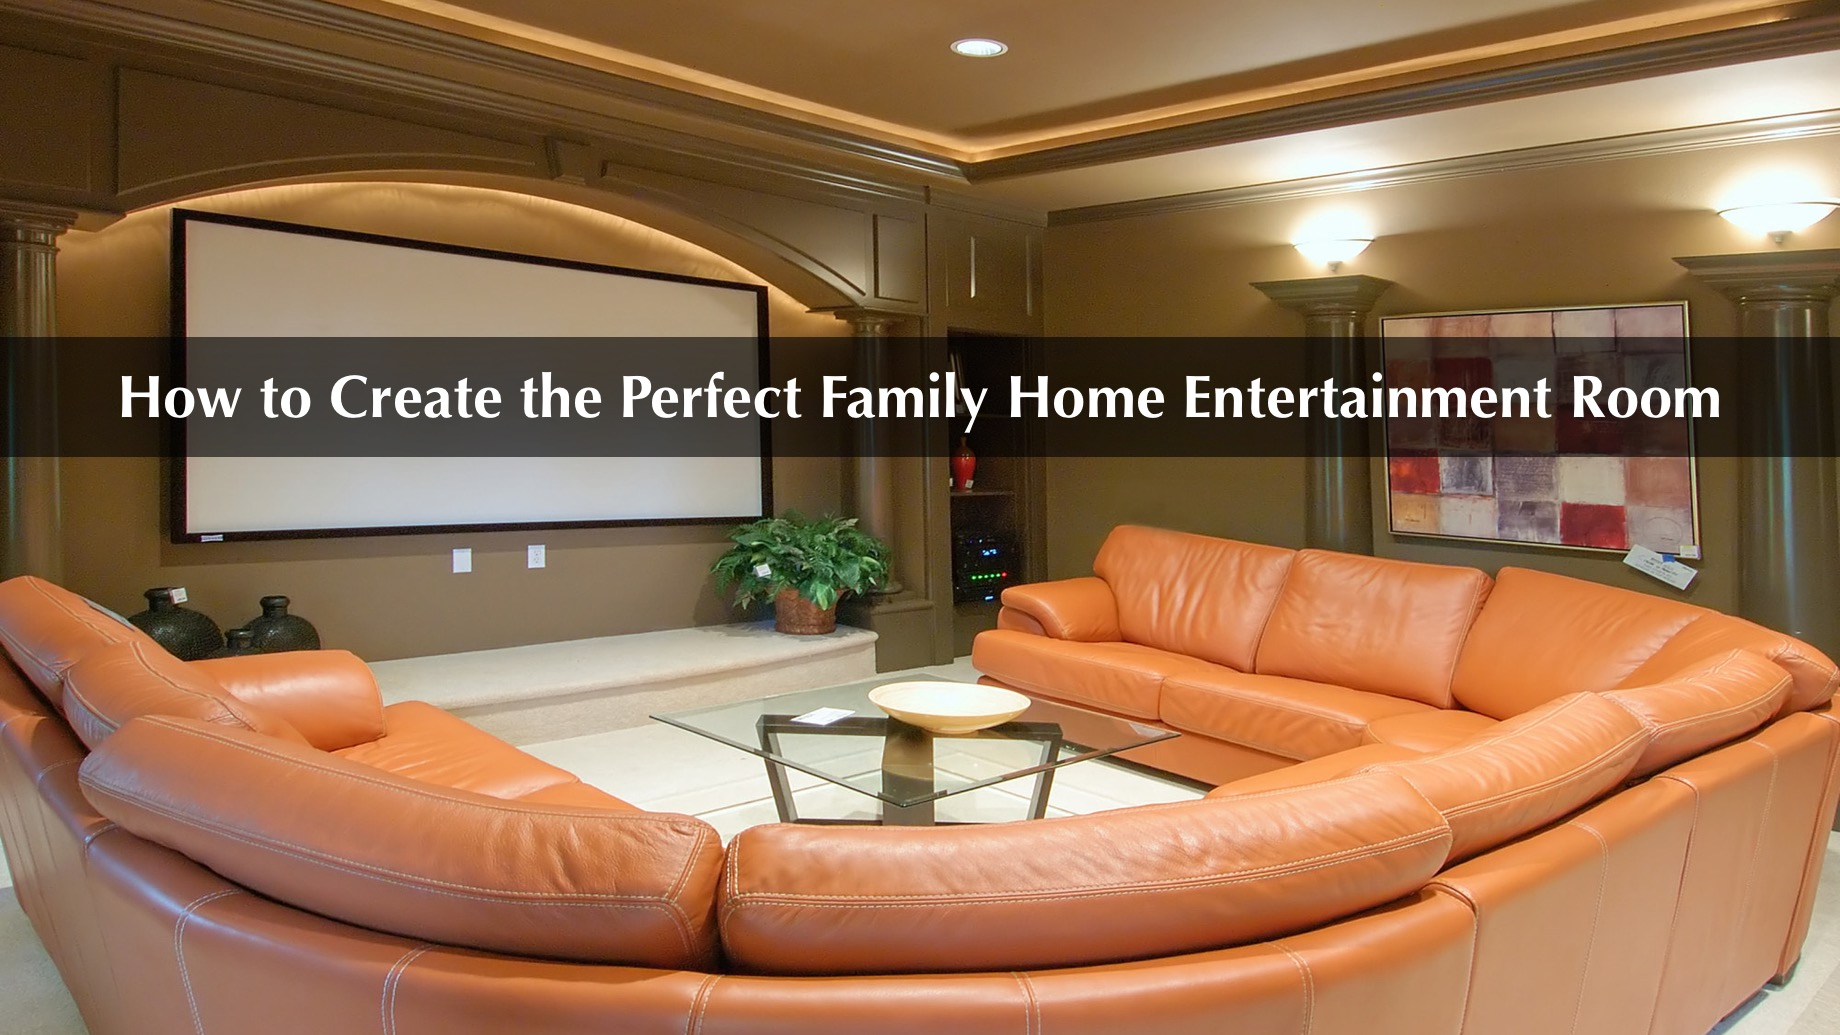 How to Create the Perfect Family Home Entertainment Room